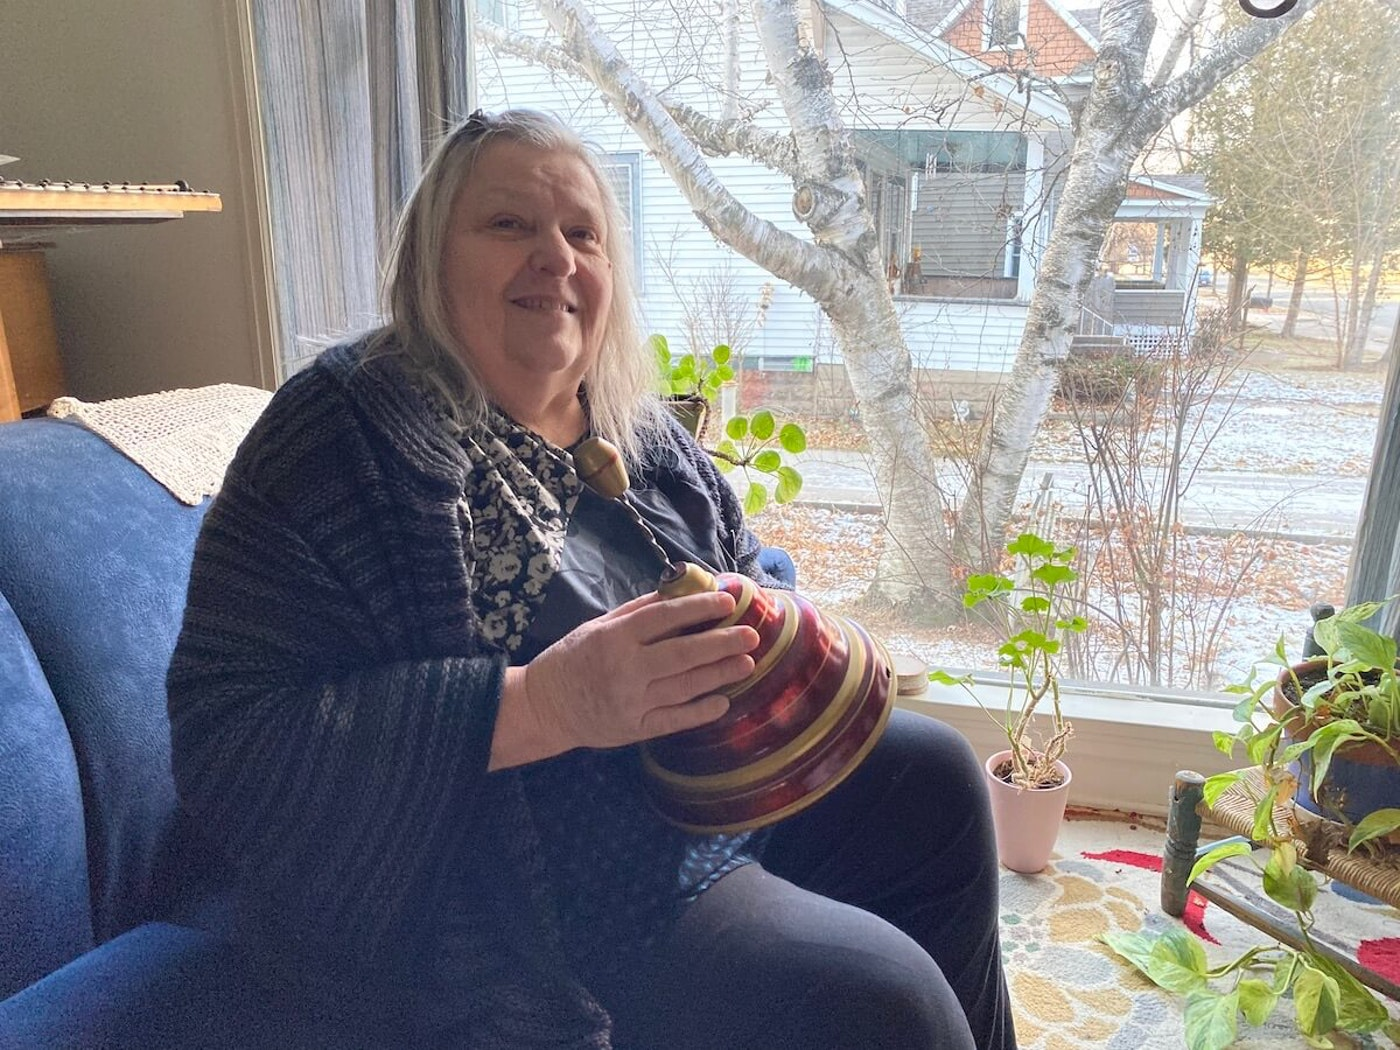 Cindy Tate recently received this German top and as a Christmas present, 67 years after one of her uncles intended to give it to her as a gift on the holiday. The top took a circuitous path to finally get to her. (Julian Emerson photo)